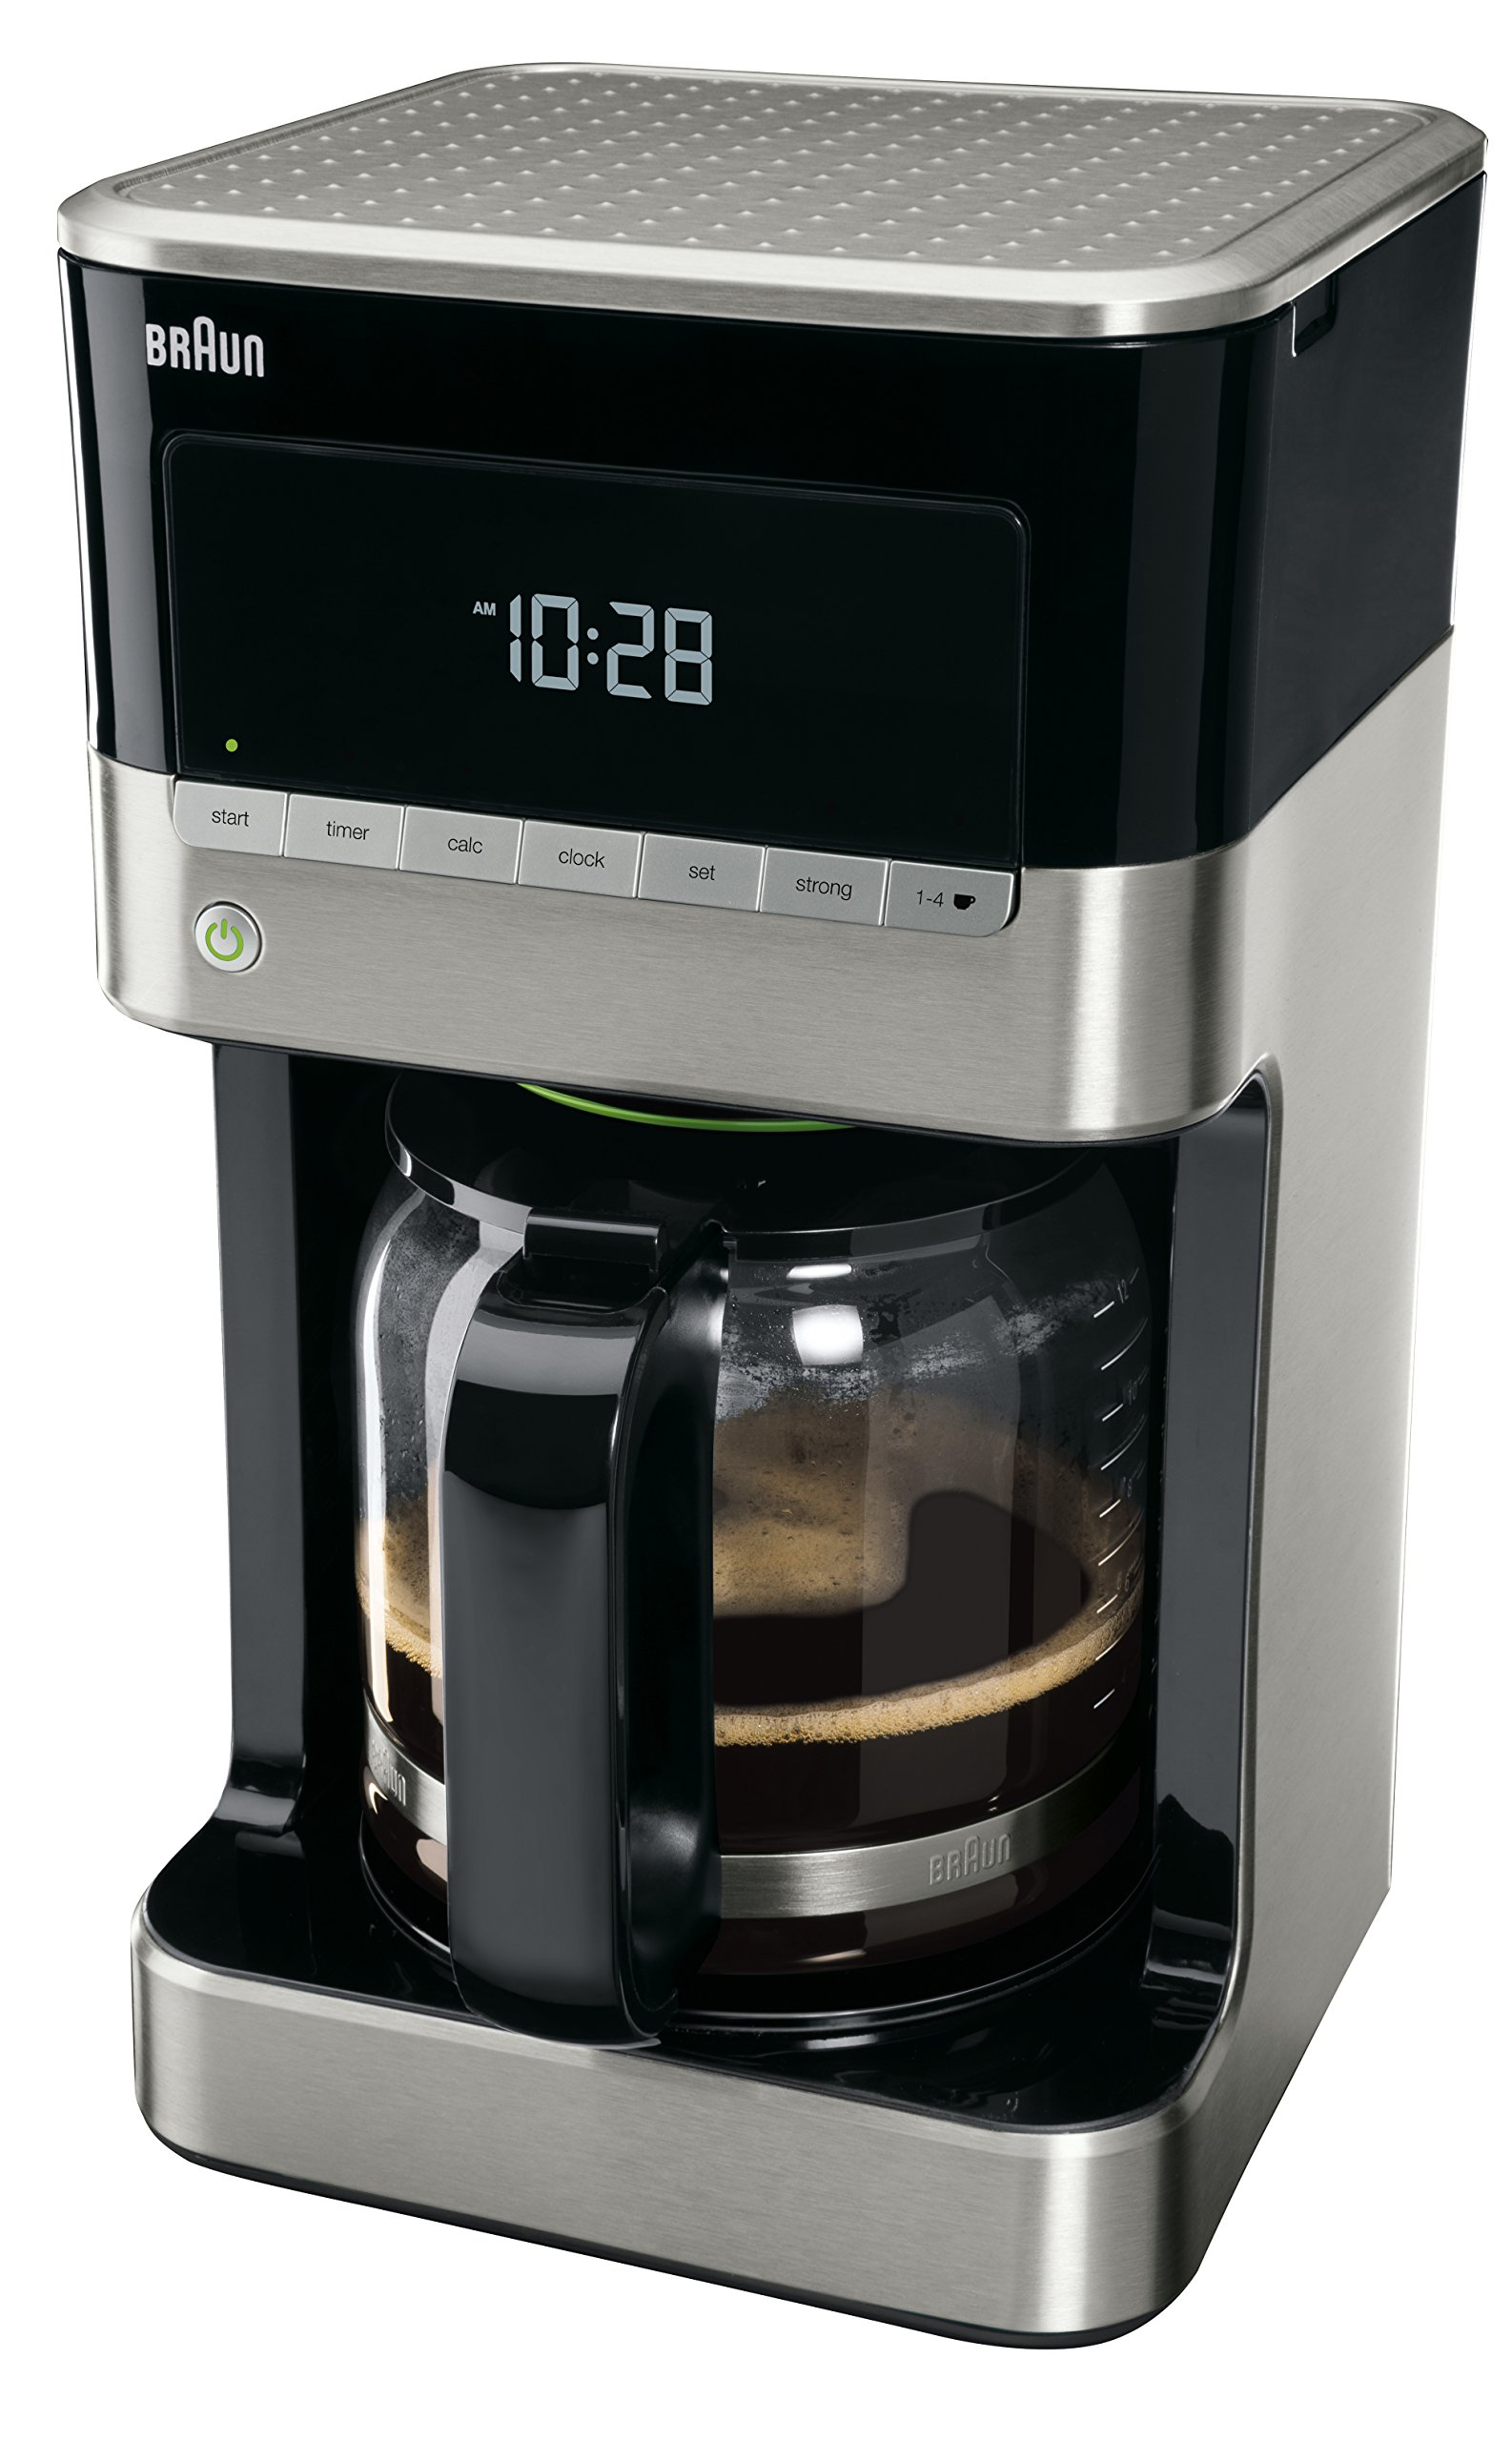 Braun KF7120 Filter Drip Coffee Maker, 12 cup, Black: Amazon.sg: Home